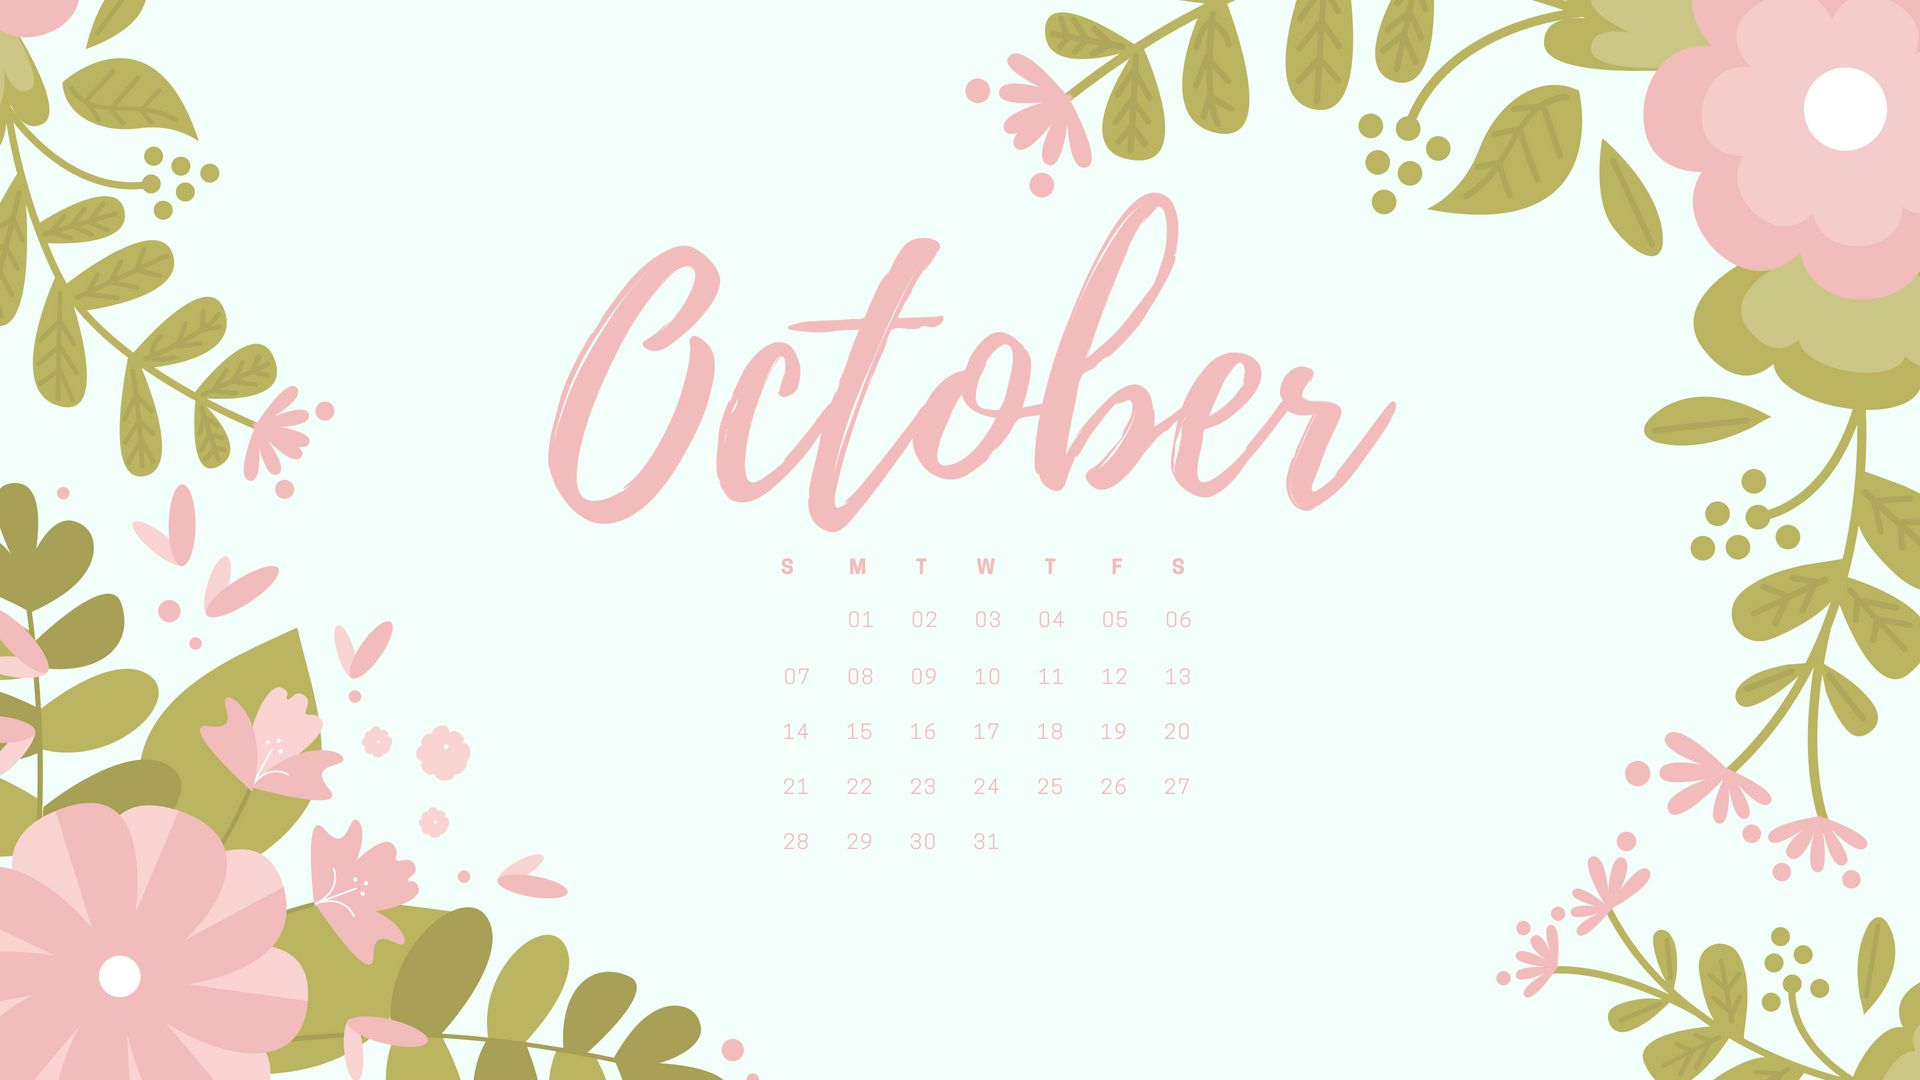 Tumblr Calendar Wallpaper : Welcome october images quotes flower zodiac birth sign